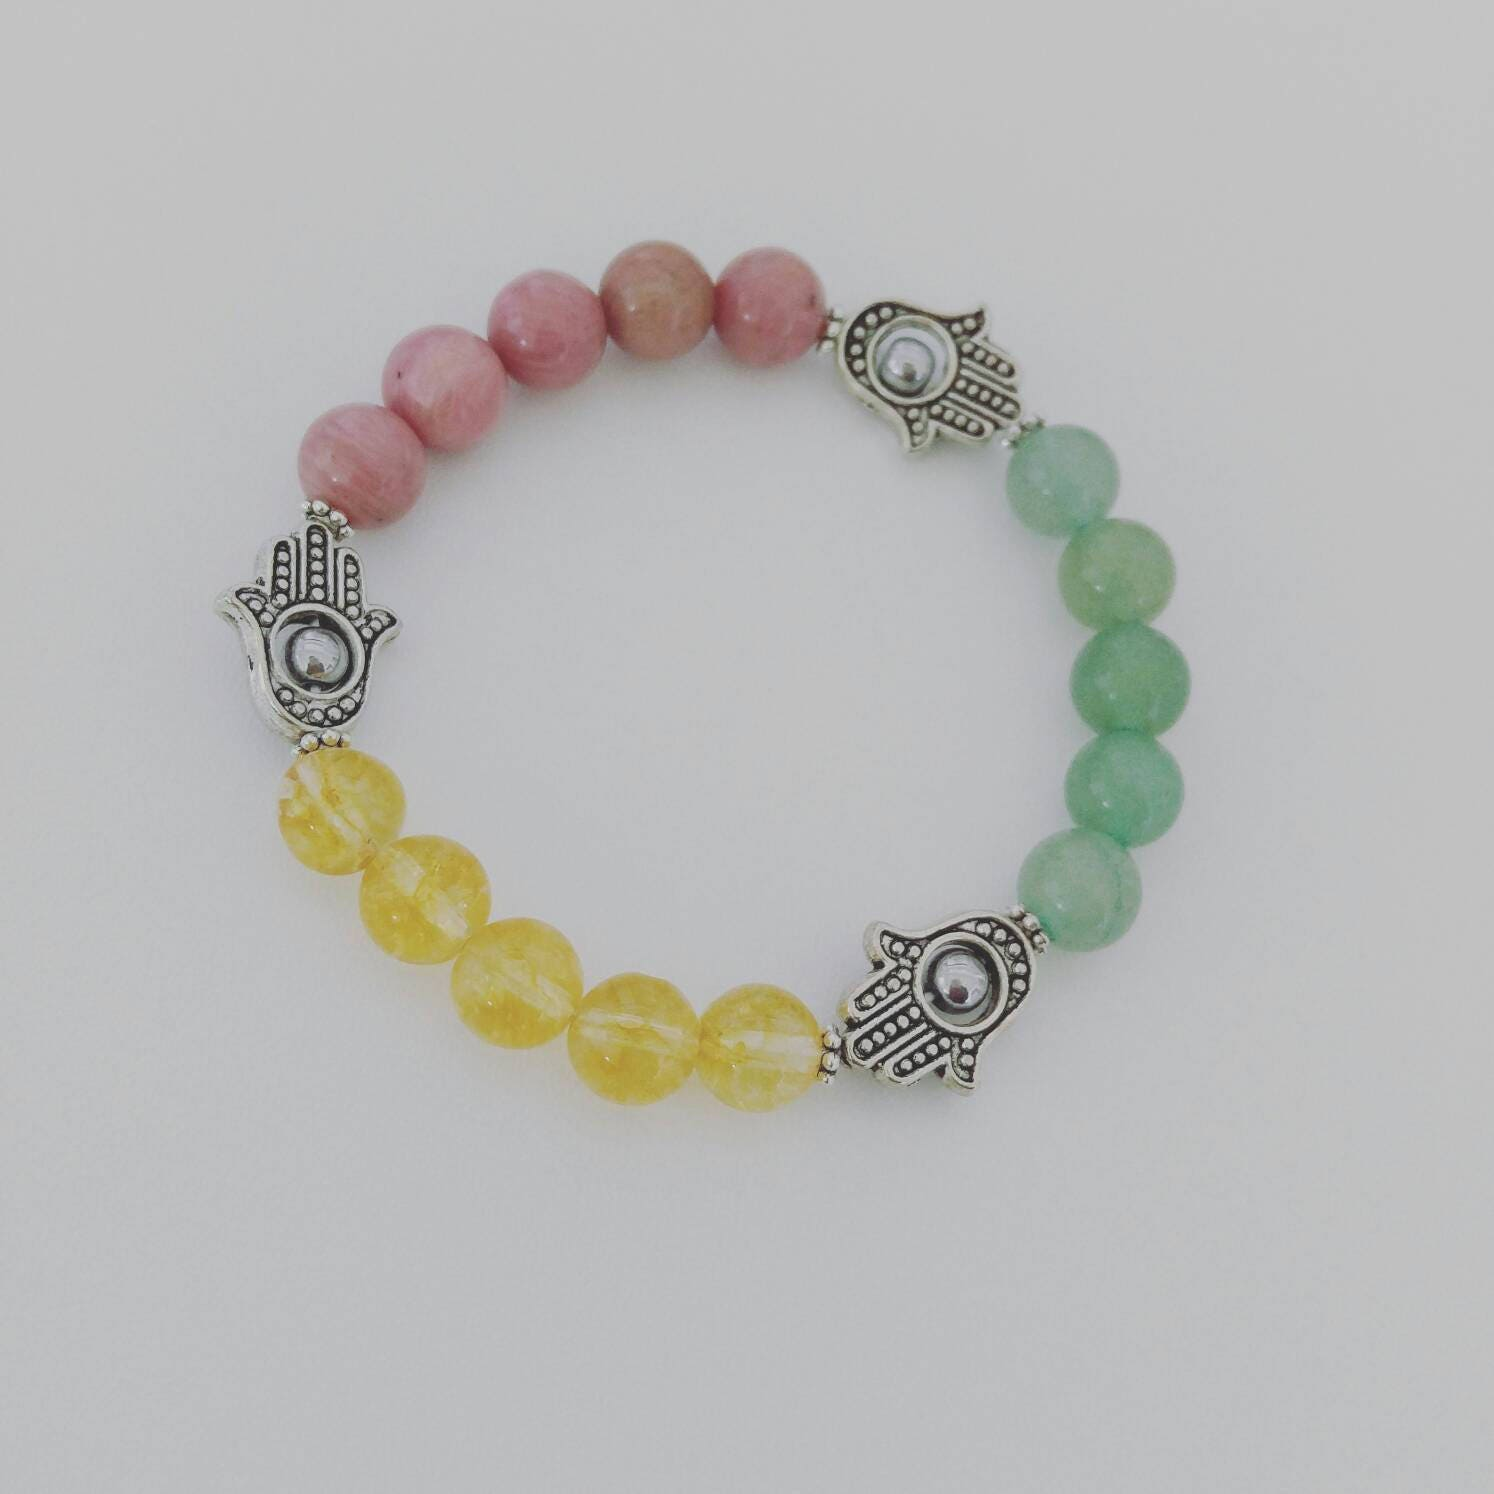 bead bracelet grey gray men natural products beads yoga buddha s mcllroy charm stone striped bangle